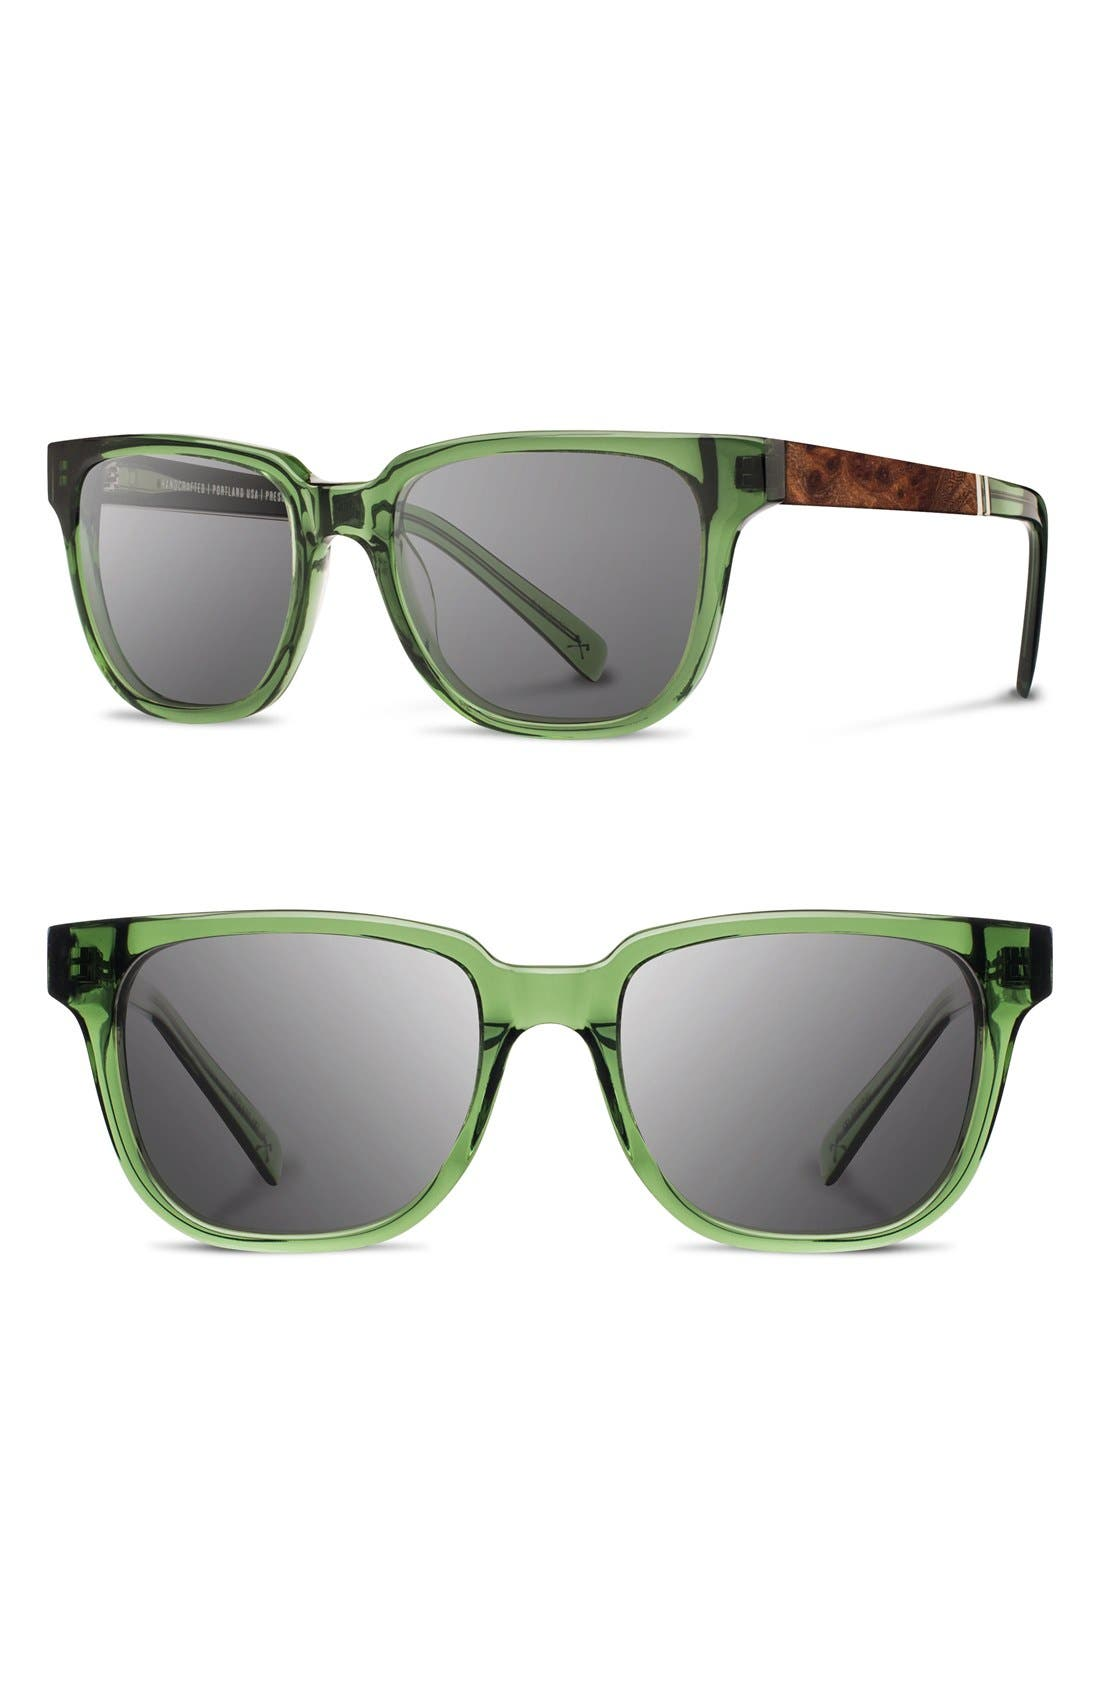 'Prescott' 52mm Acetate & Wood Sunglasses,                         Main,                         color, EMERALD/ ELM BURL/ GREY